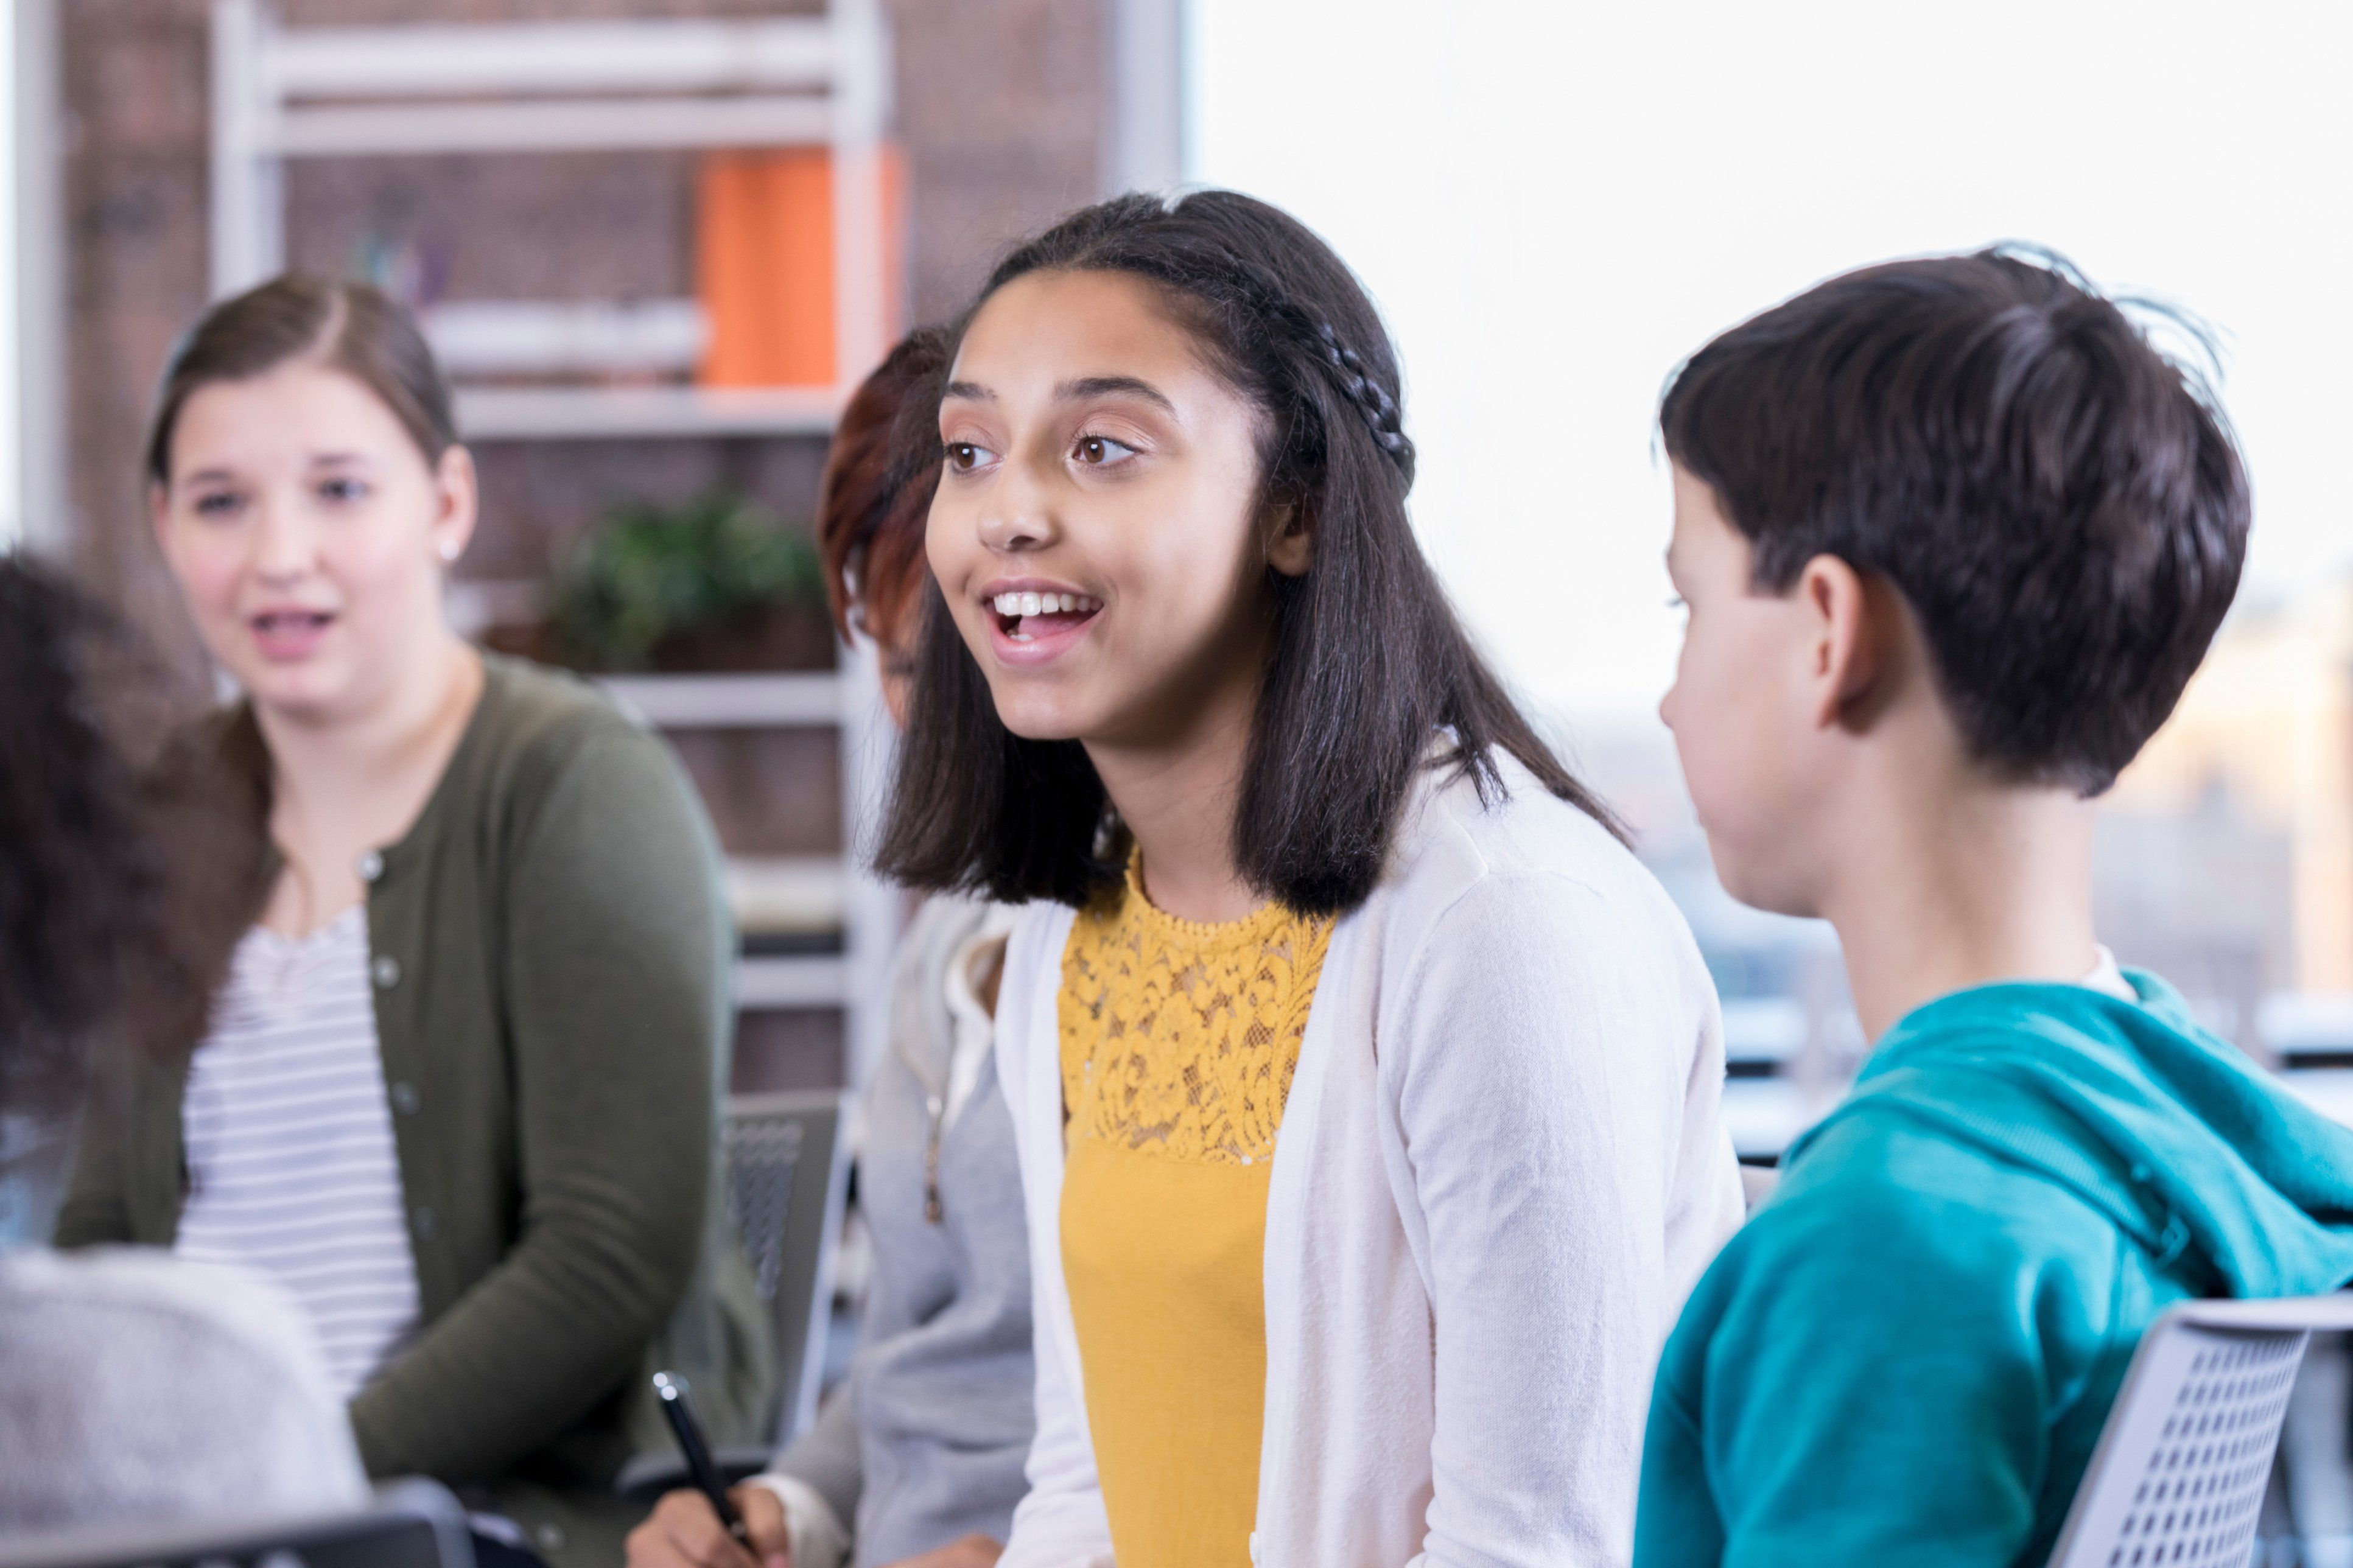 A 4 Step Process For Building Student Resilience